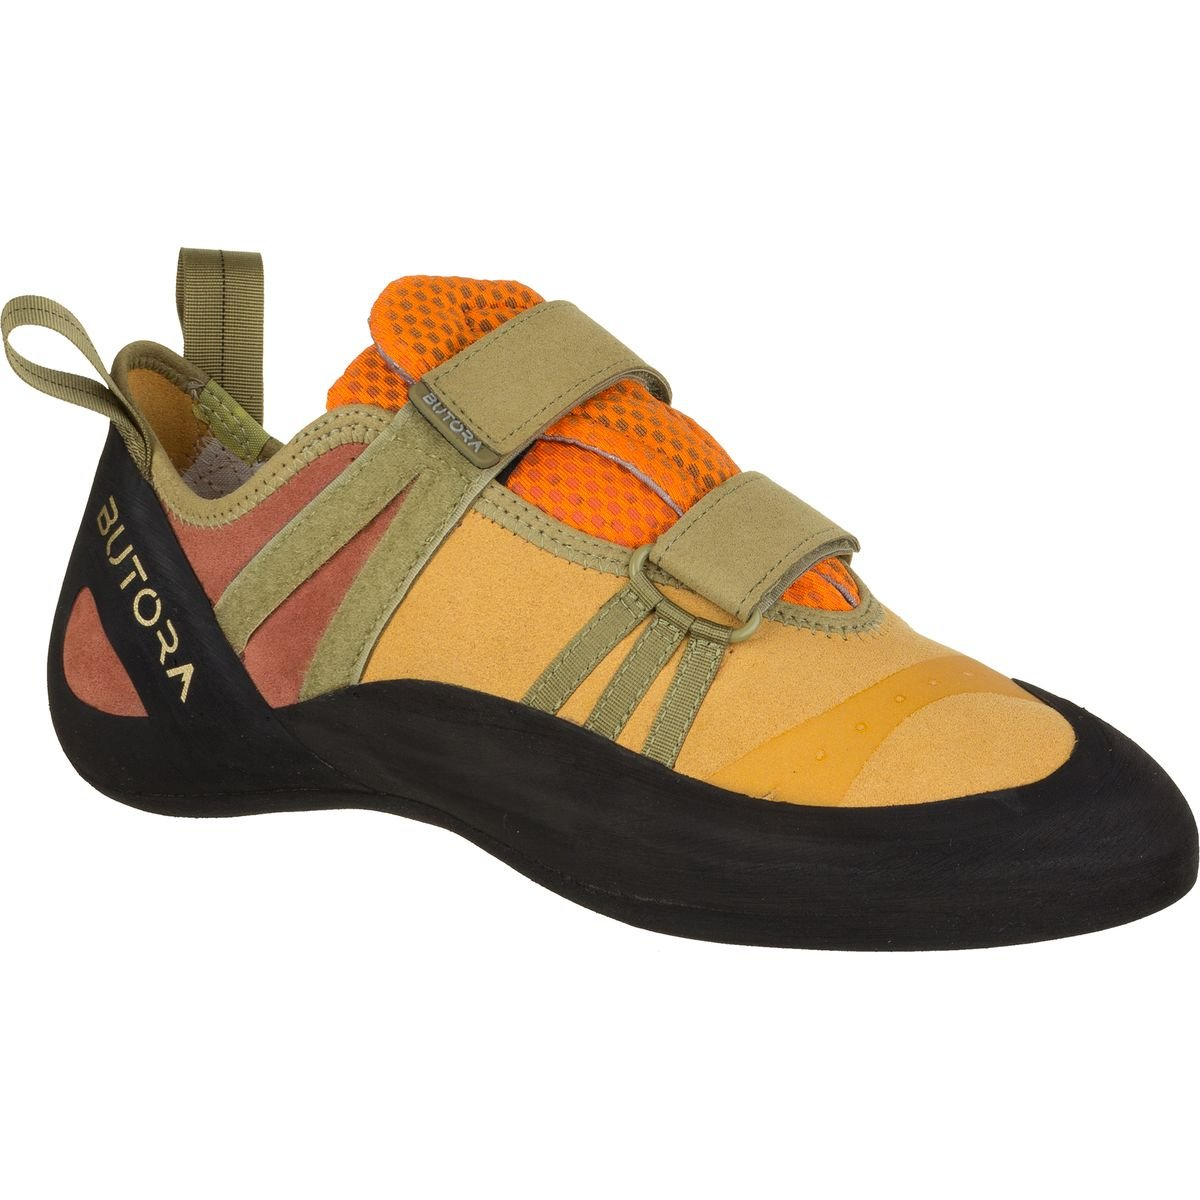 Butora Endeavor Narrow Fit Climbing Shoe - Men's Seirra Gold 12.5 by Butora